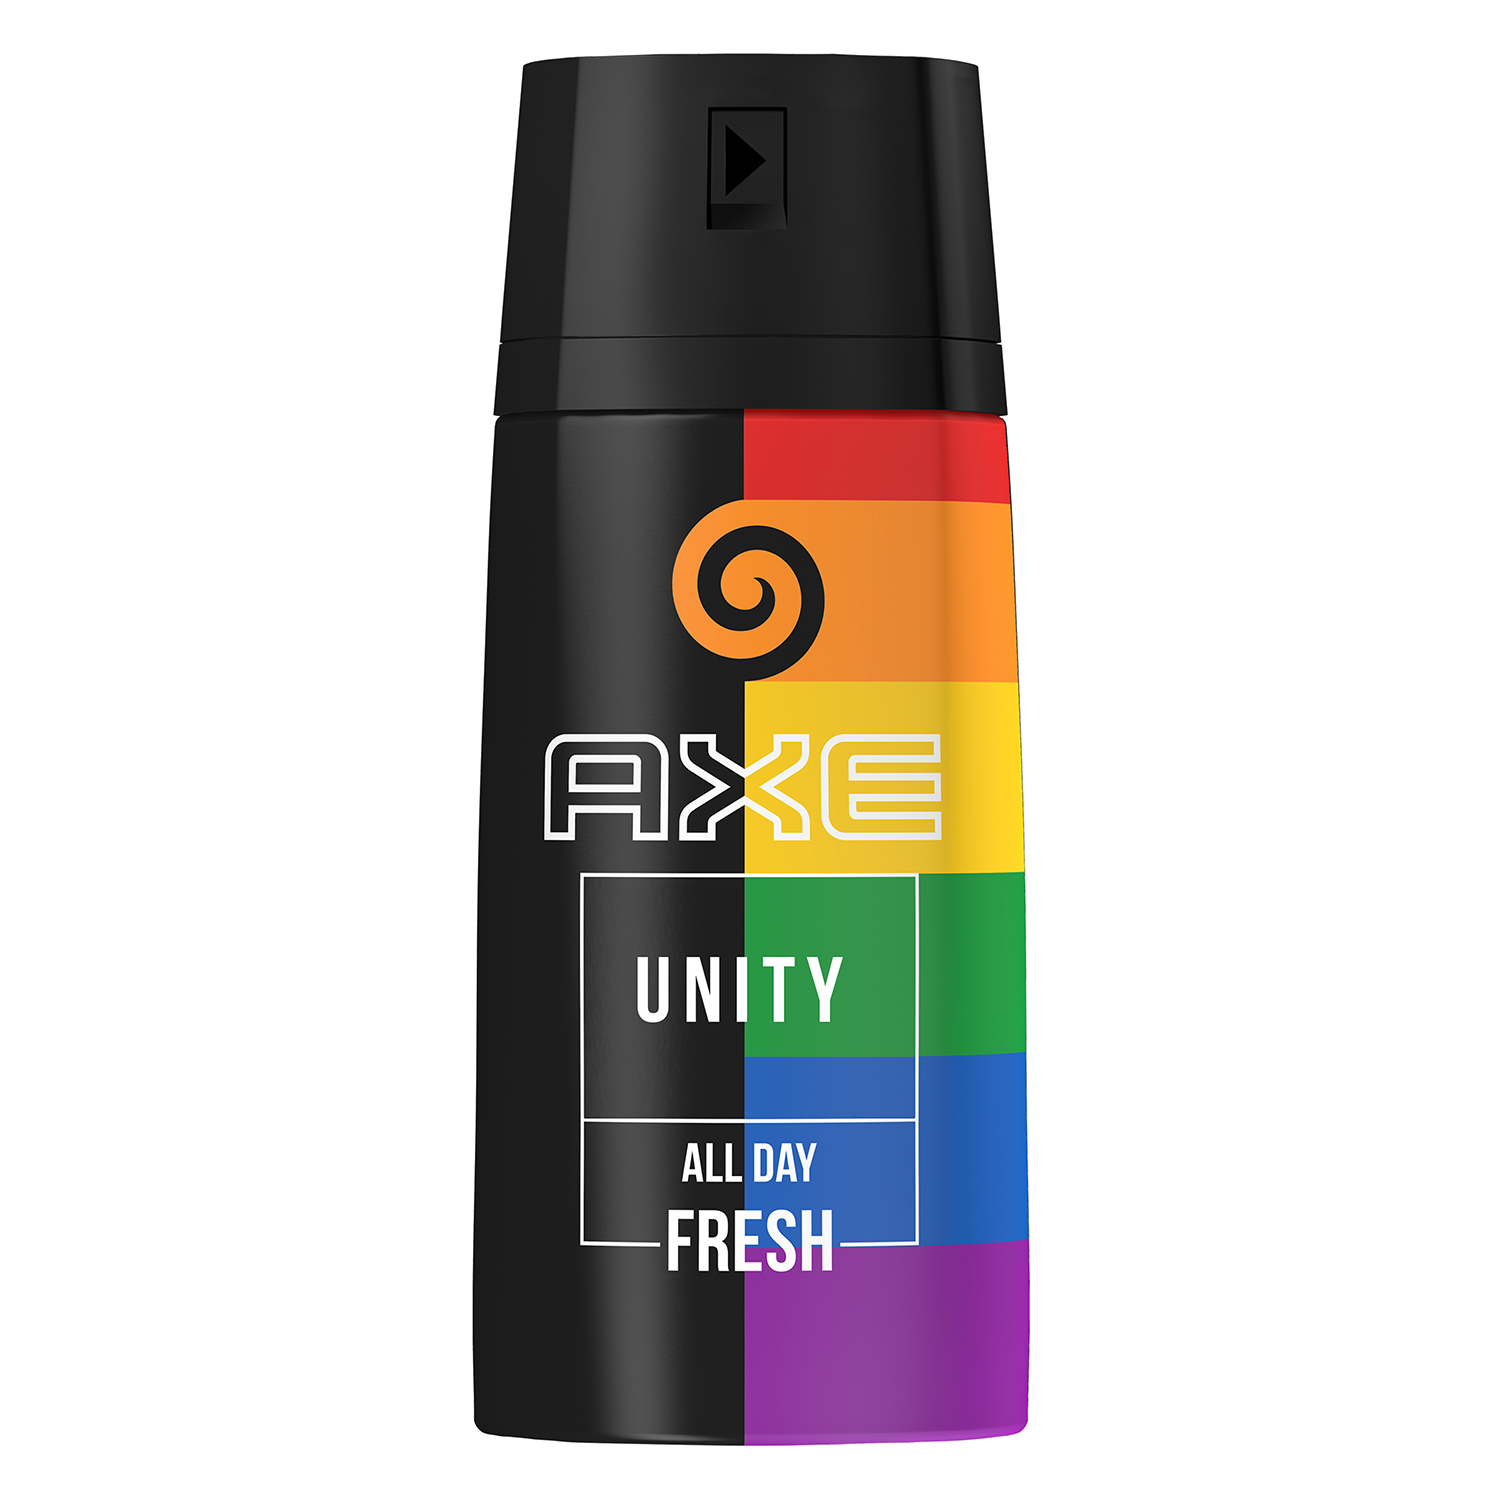 Desodorante en spray Unity Axe 150 ml.